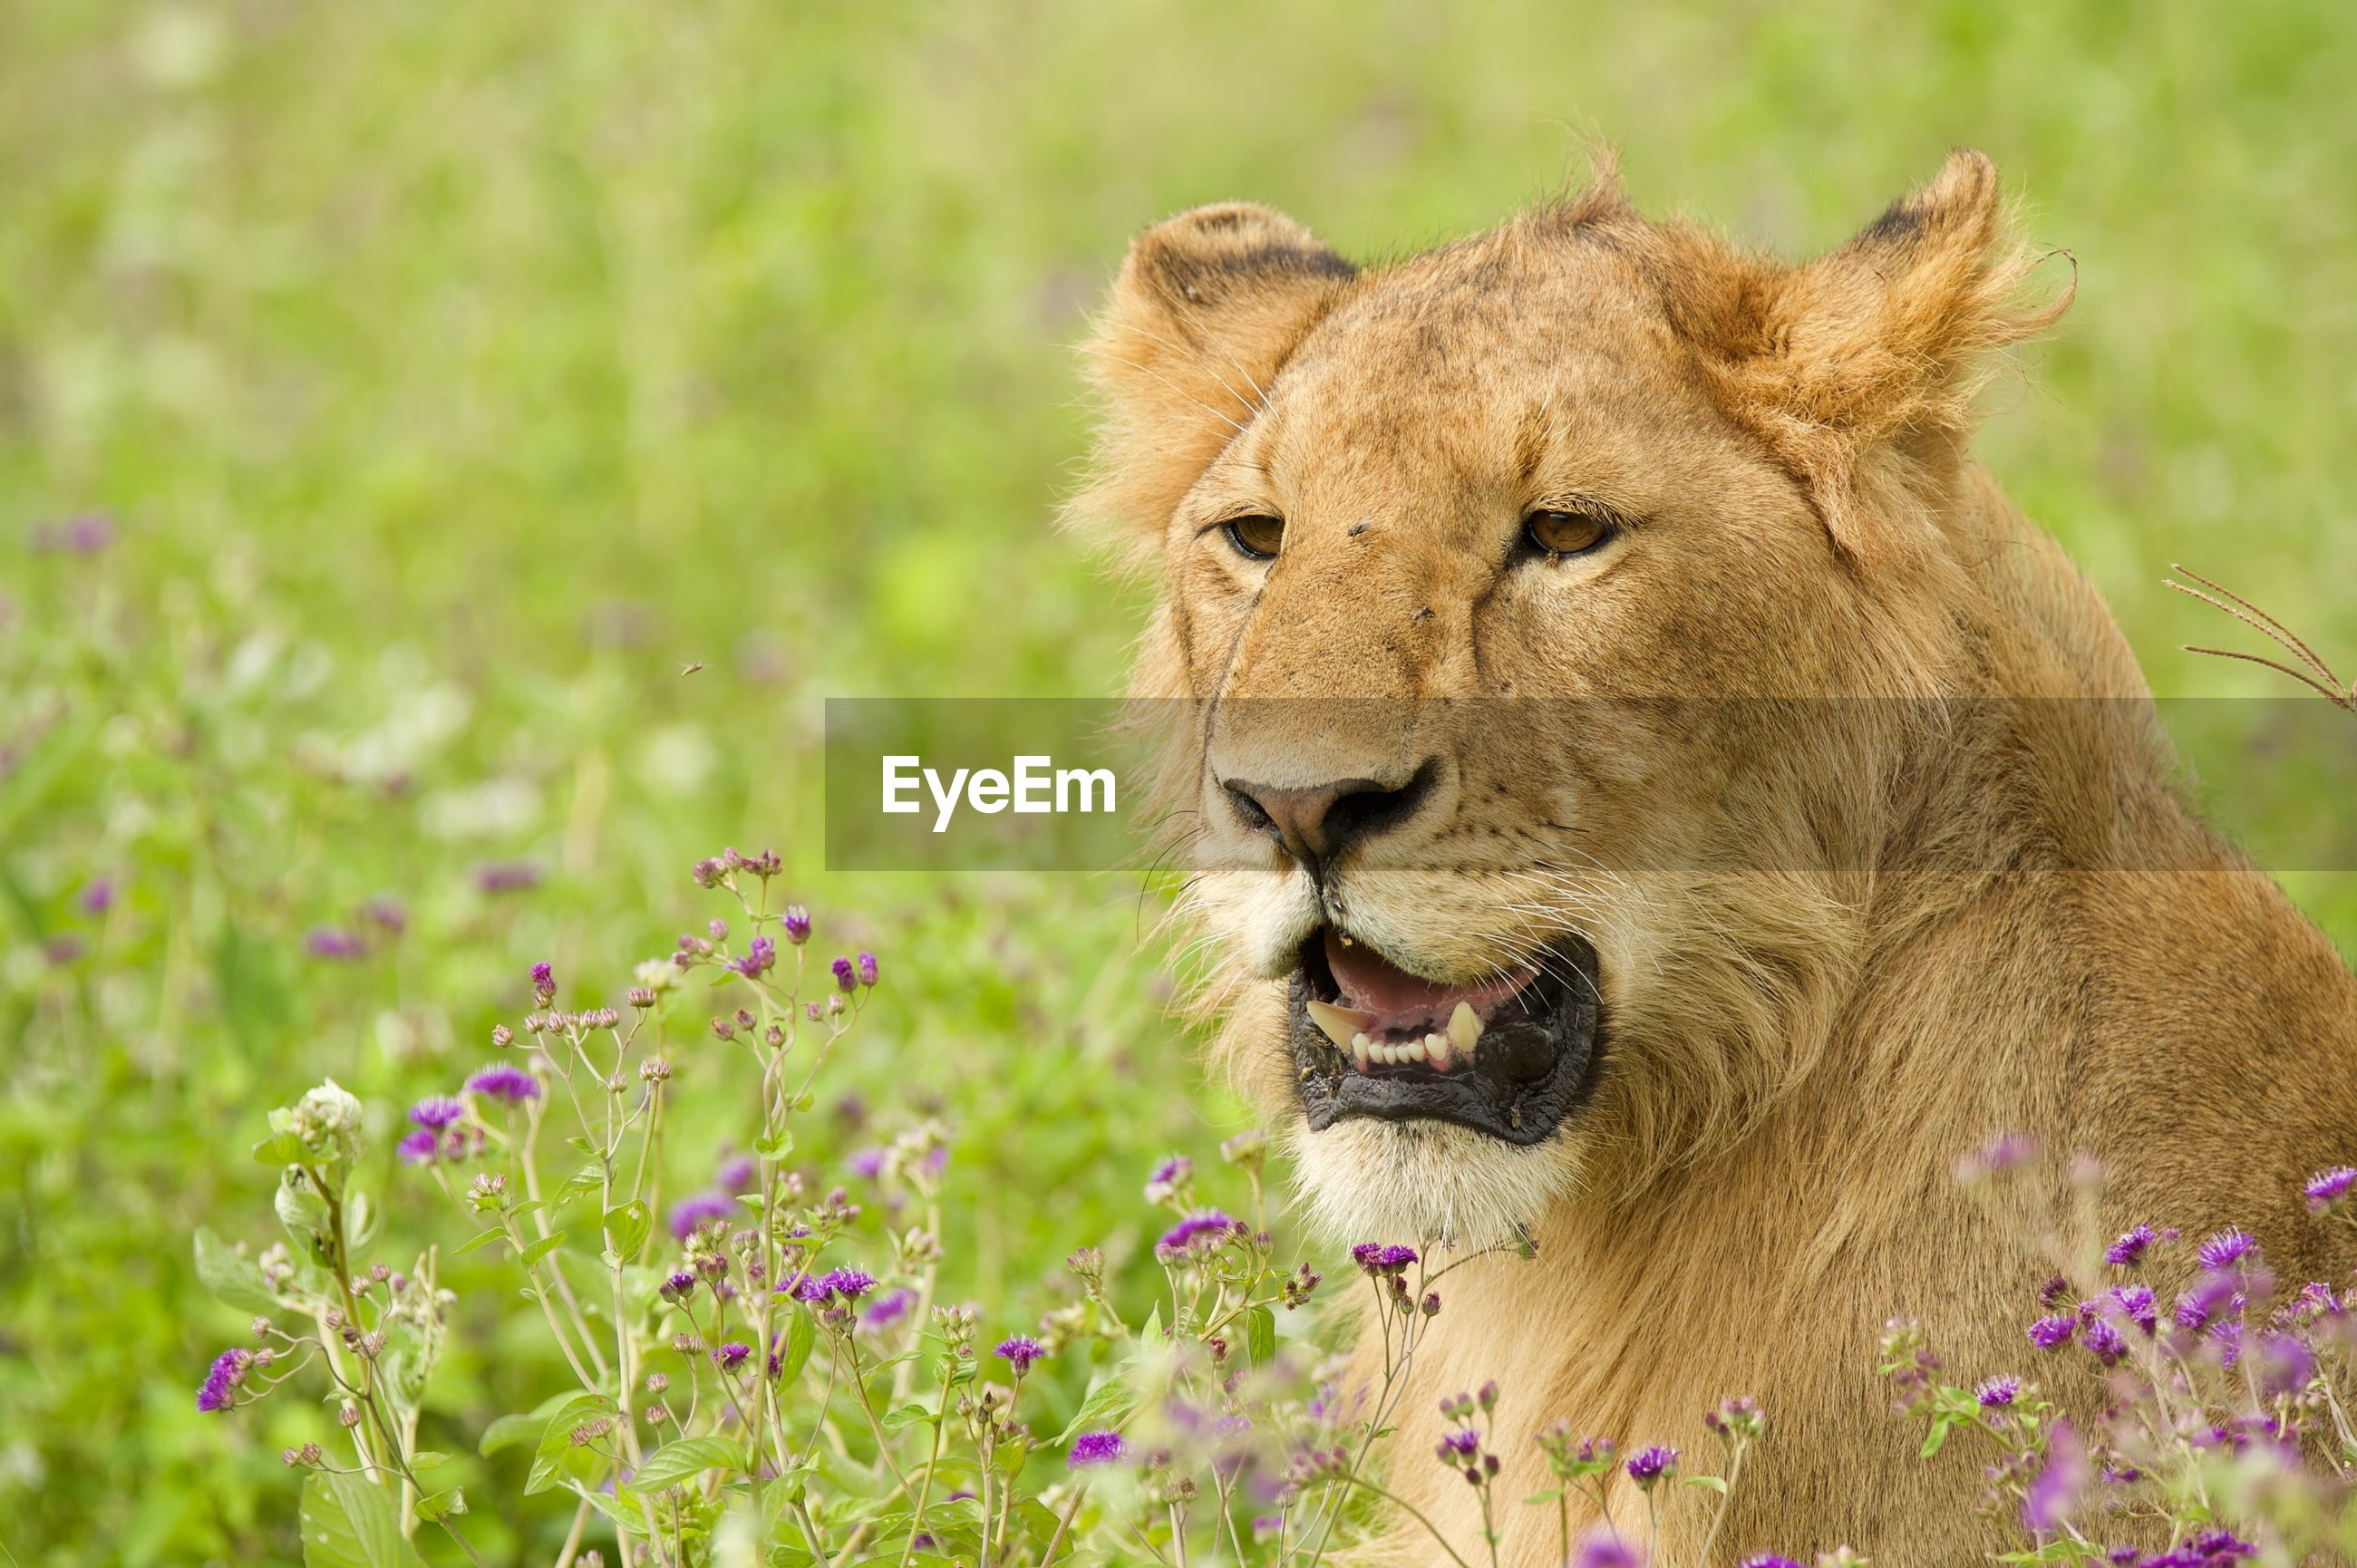 Close-up of lion looking away on field